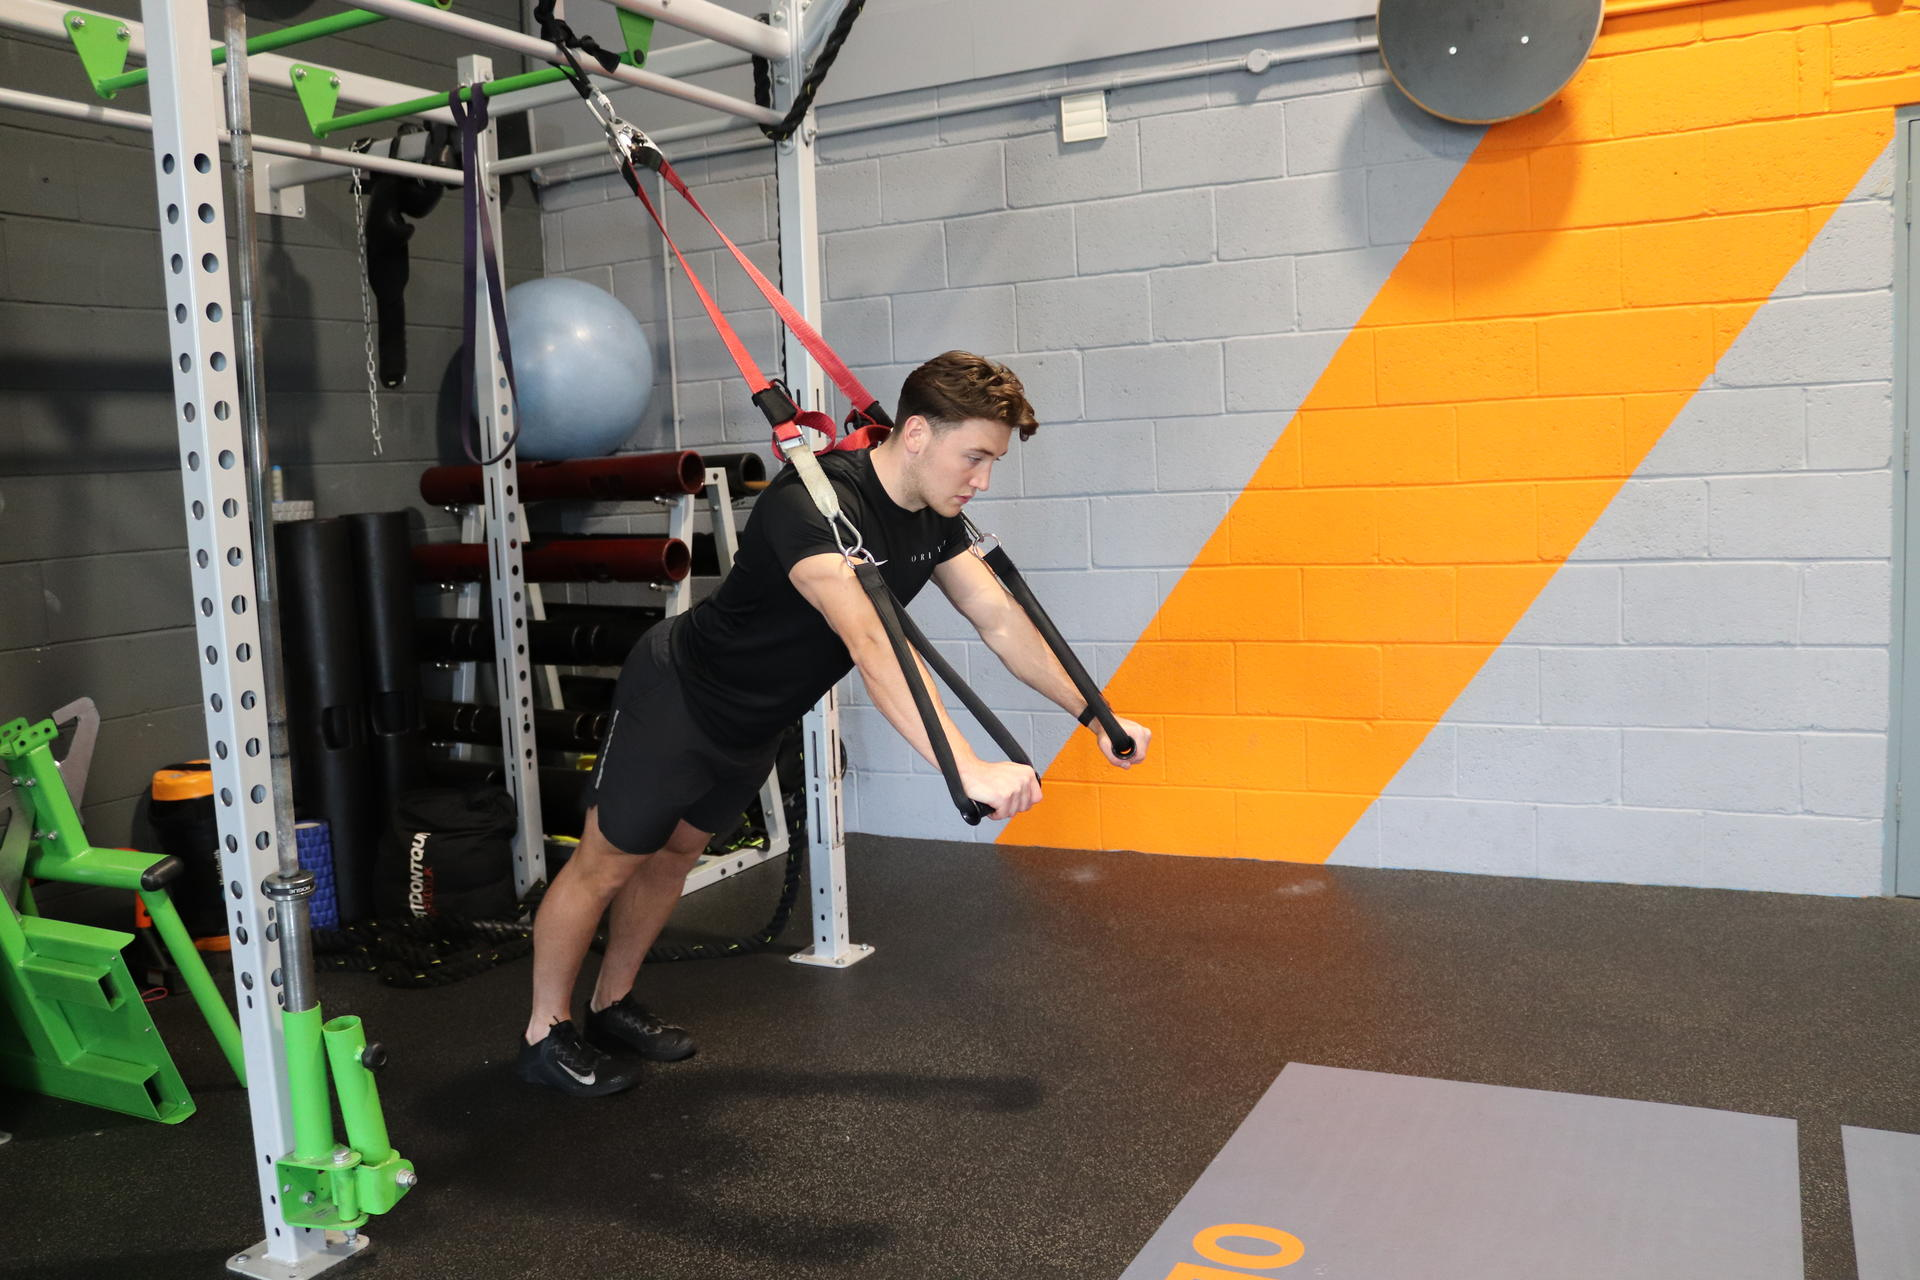 Trx suspension training exercises